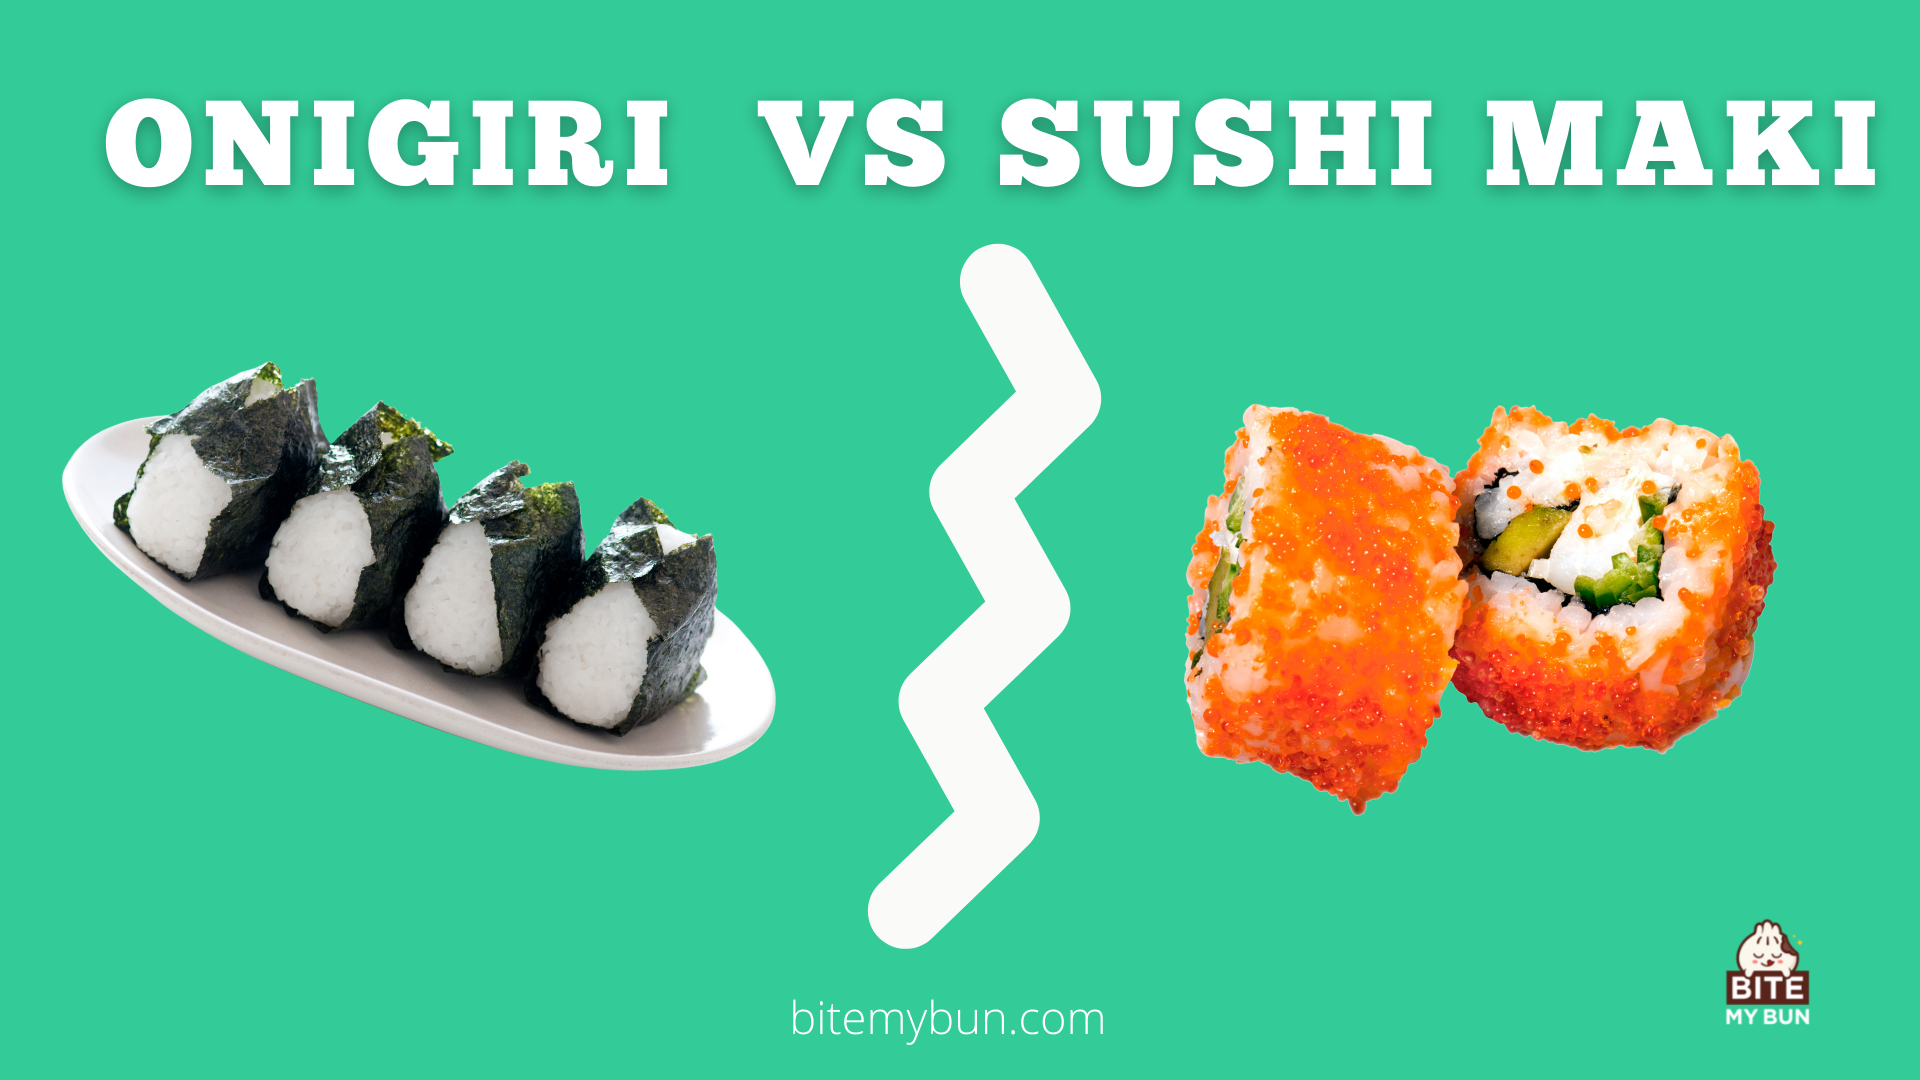 Onigiri vs sushi maki | What's the difference? It's about shape and flavor